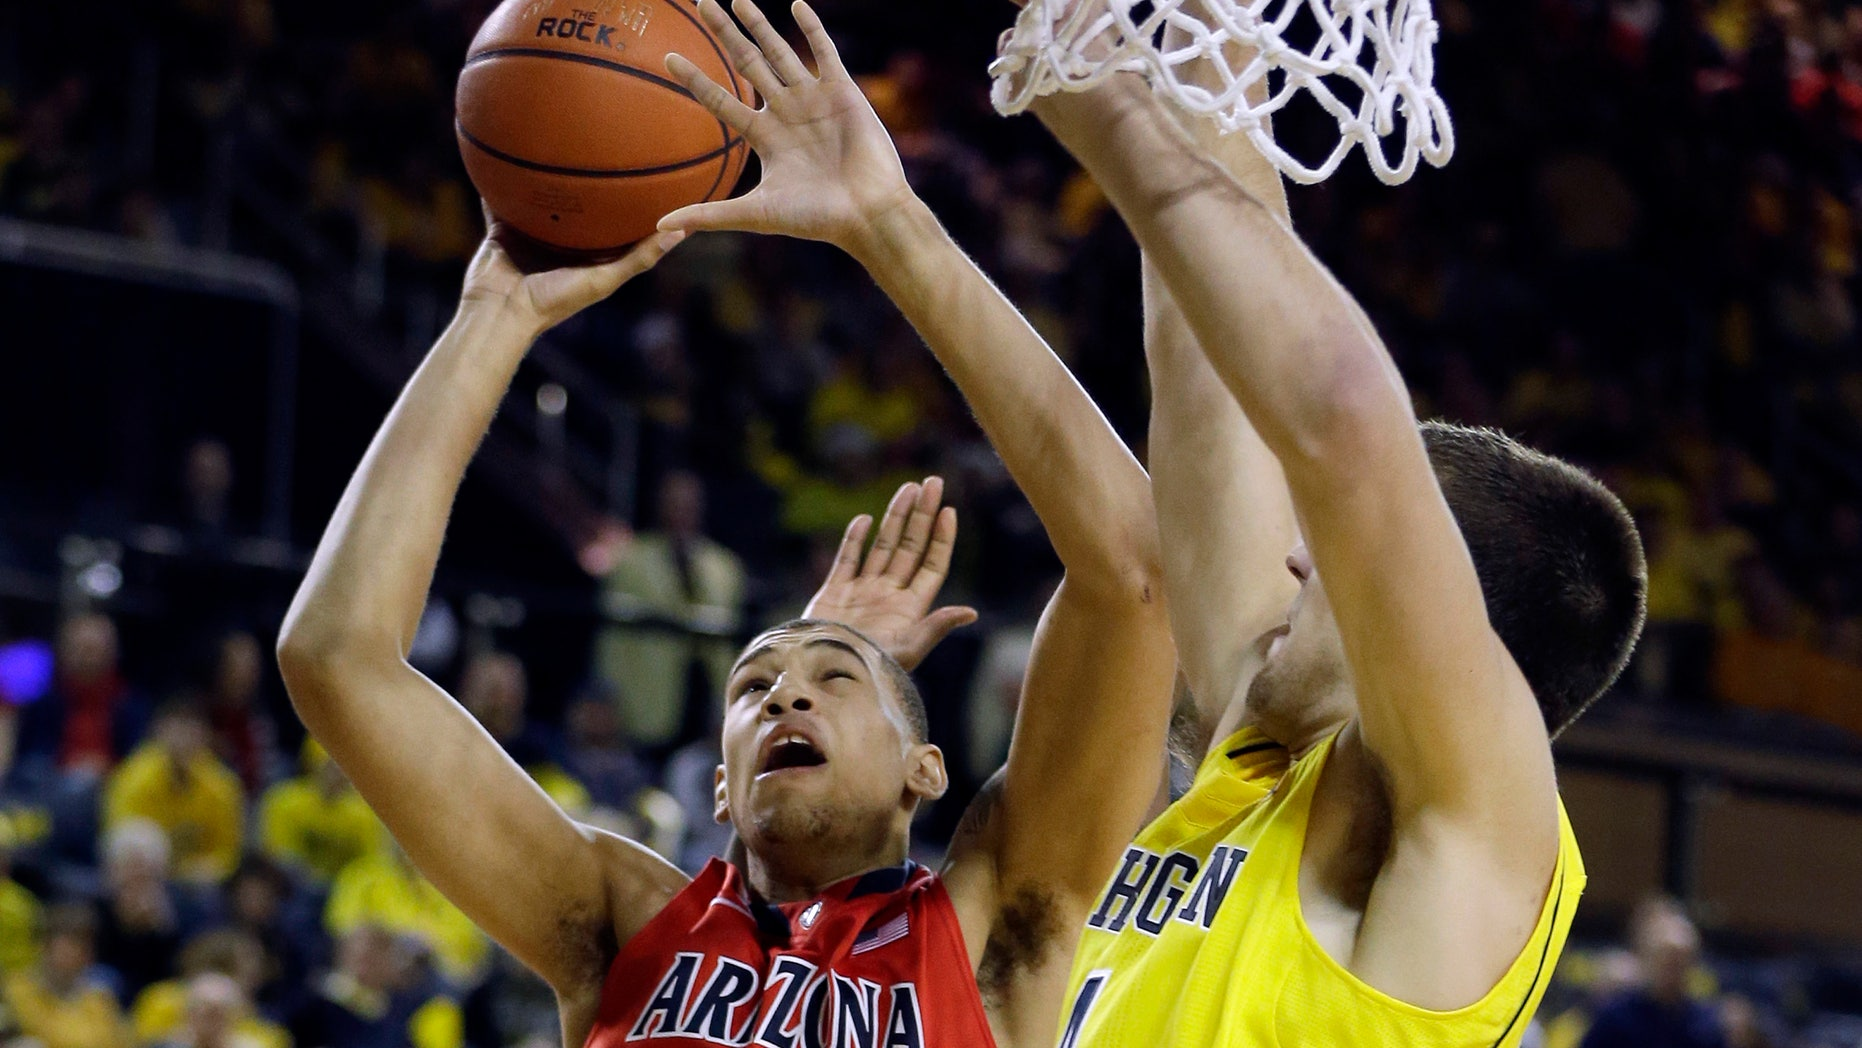 Arizona forward Brandon Ashley (21) makes a lay-up defended by Michigan forward Mitch McGary (4) during the second half of an NCAA college basketball game in Ann Arbor, Mich., Saturday, Dec. 14, 2013. (AP Photo/Carlos Osorio)